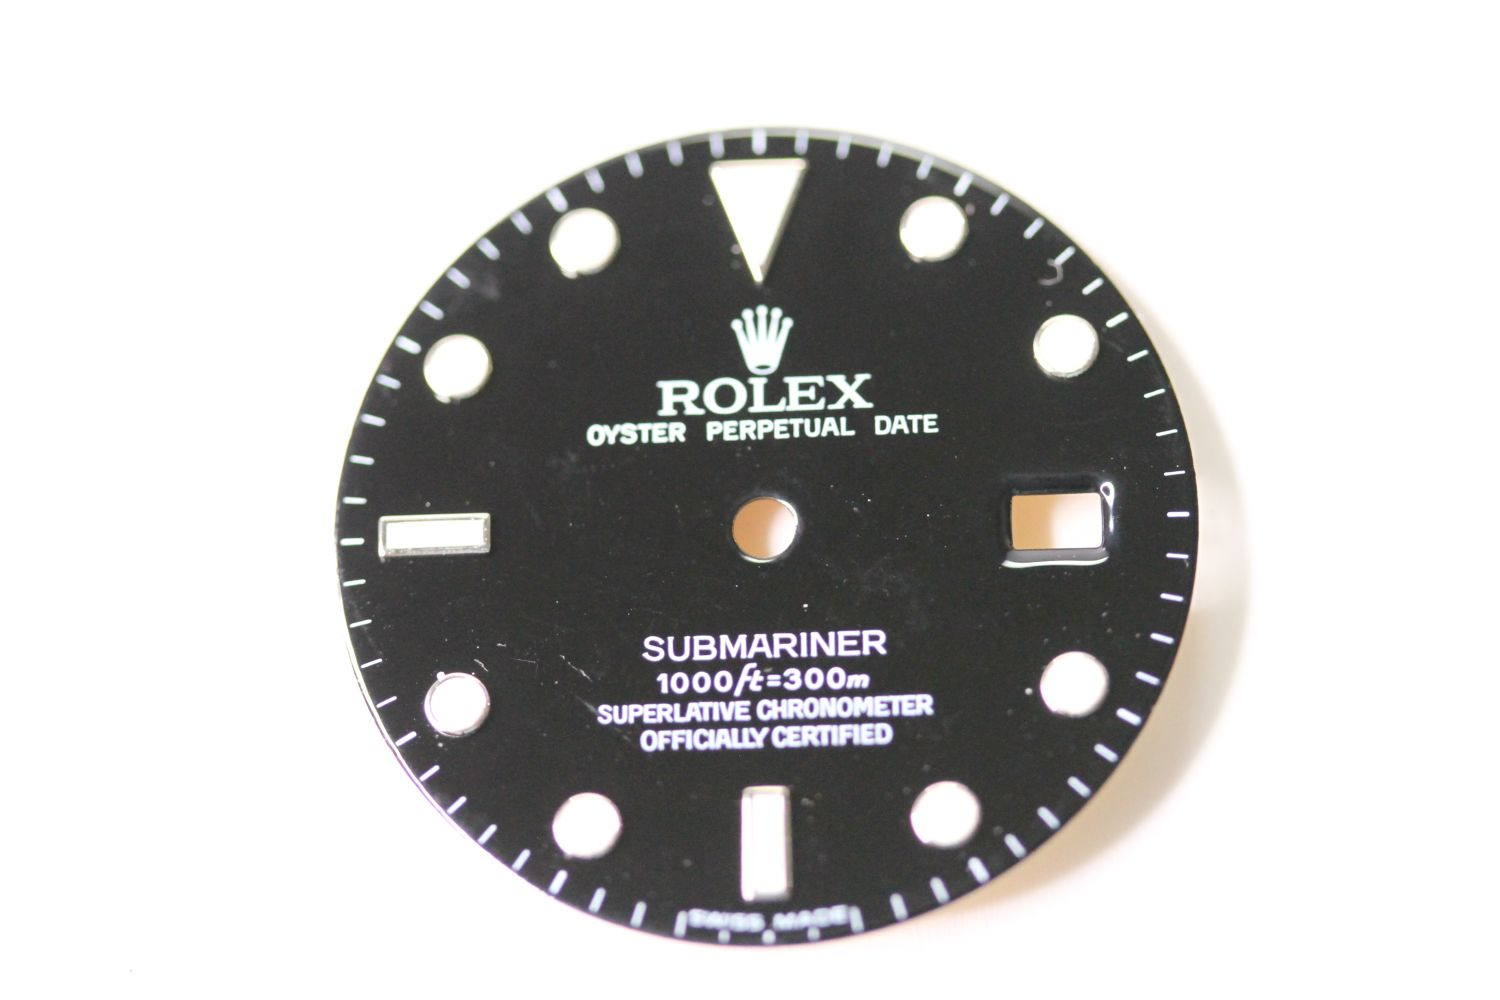 ROLEX SUBMARINER DATE GLOSS DIAL REFERENCE 16610, circular gloss black dial with applied hour